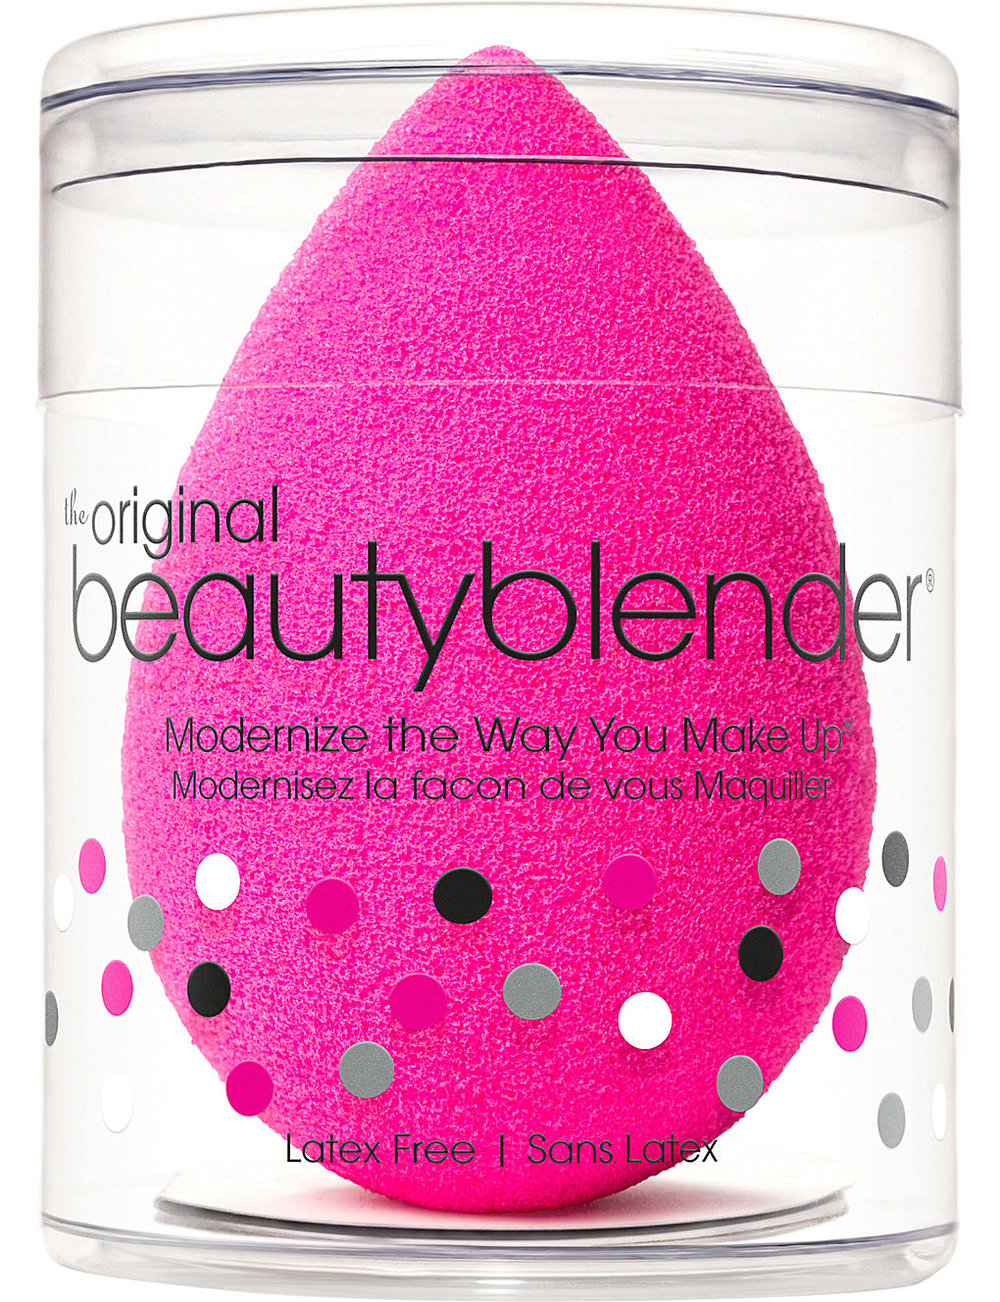 beauty-blender-makeup-classes-nyc.jpg